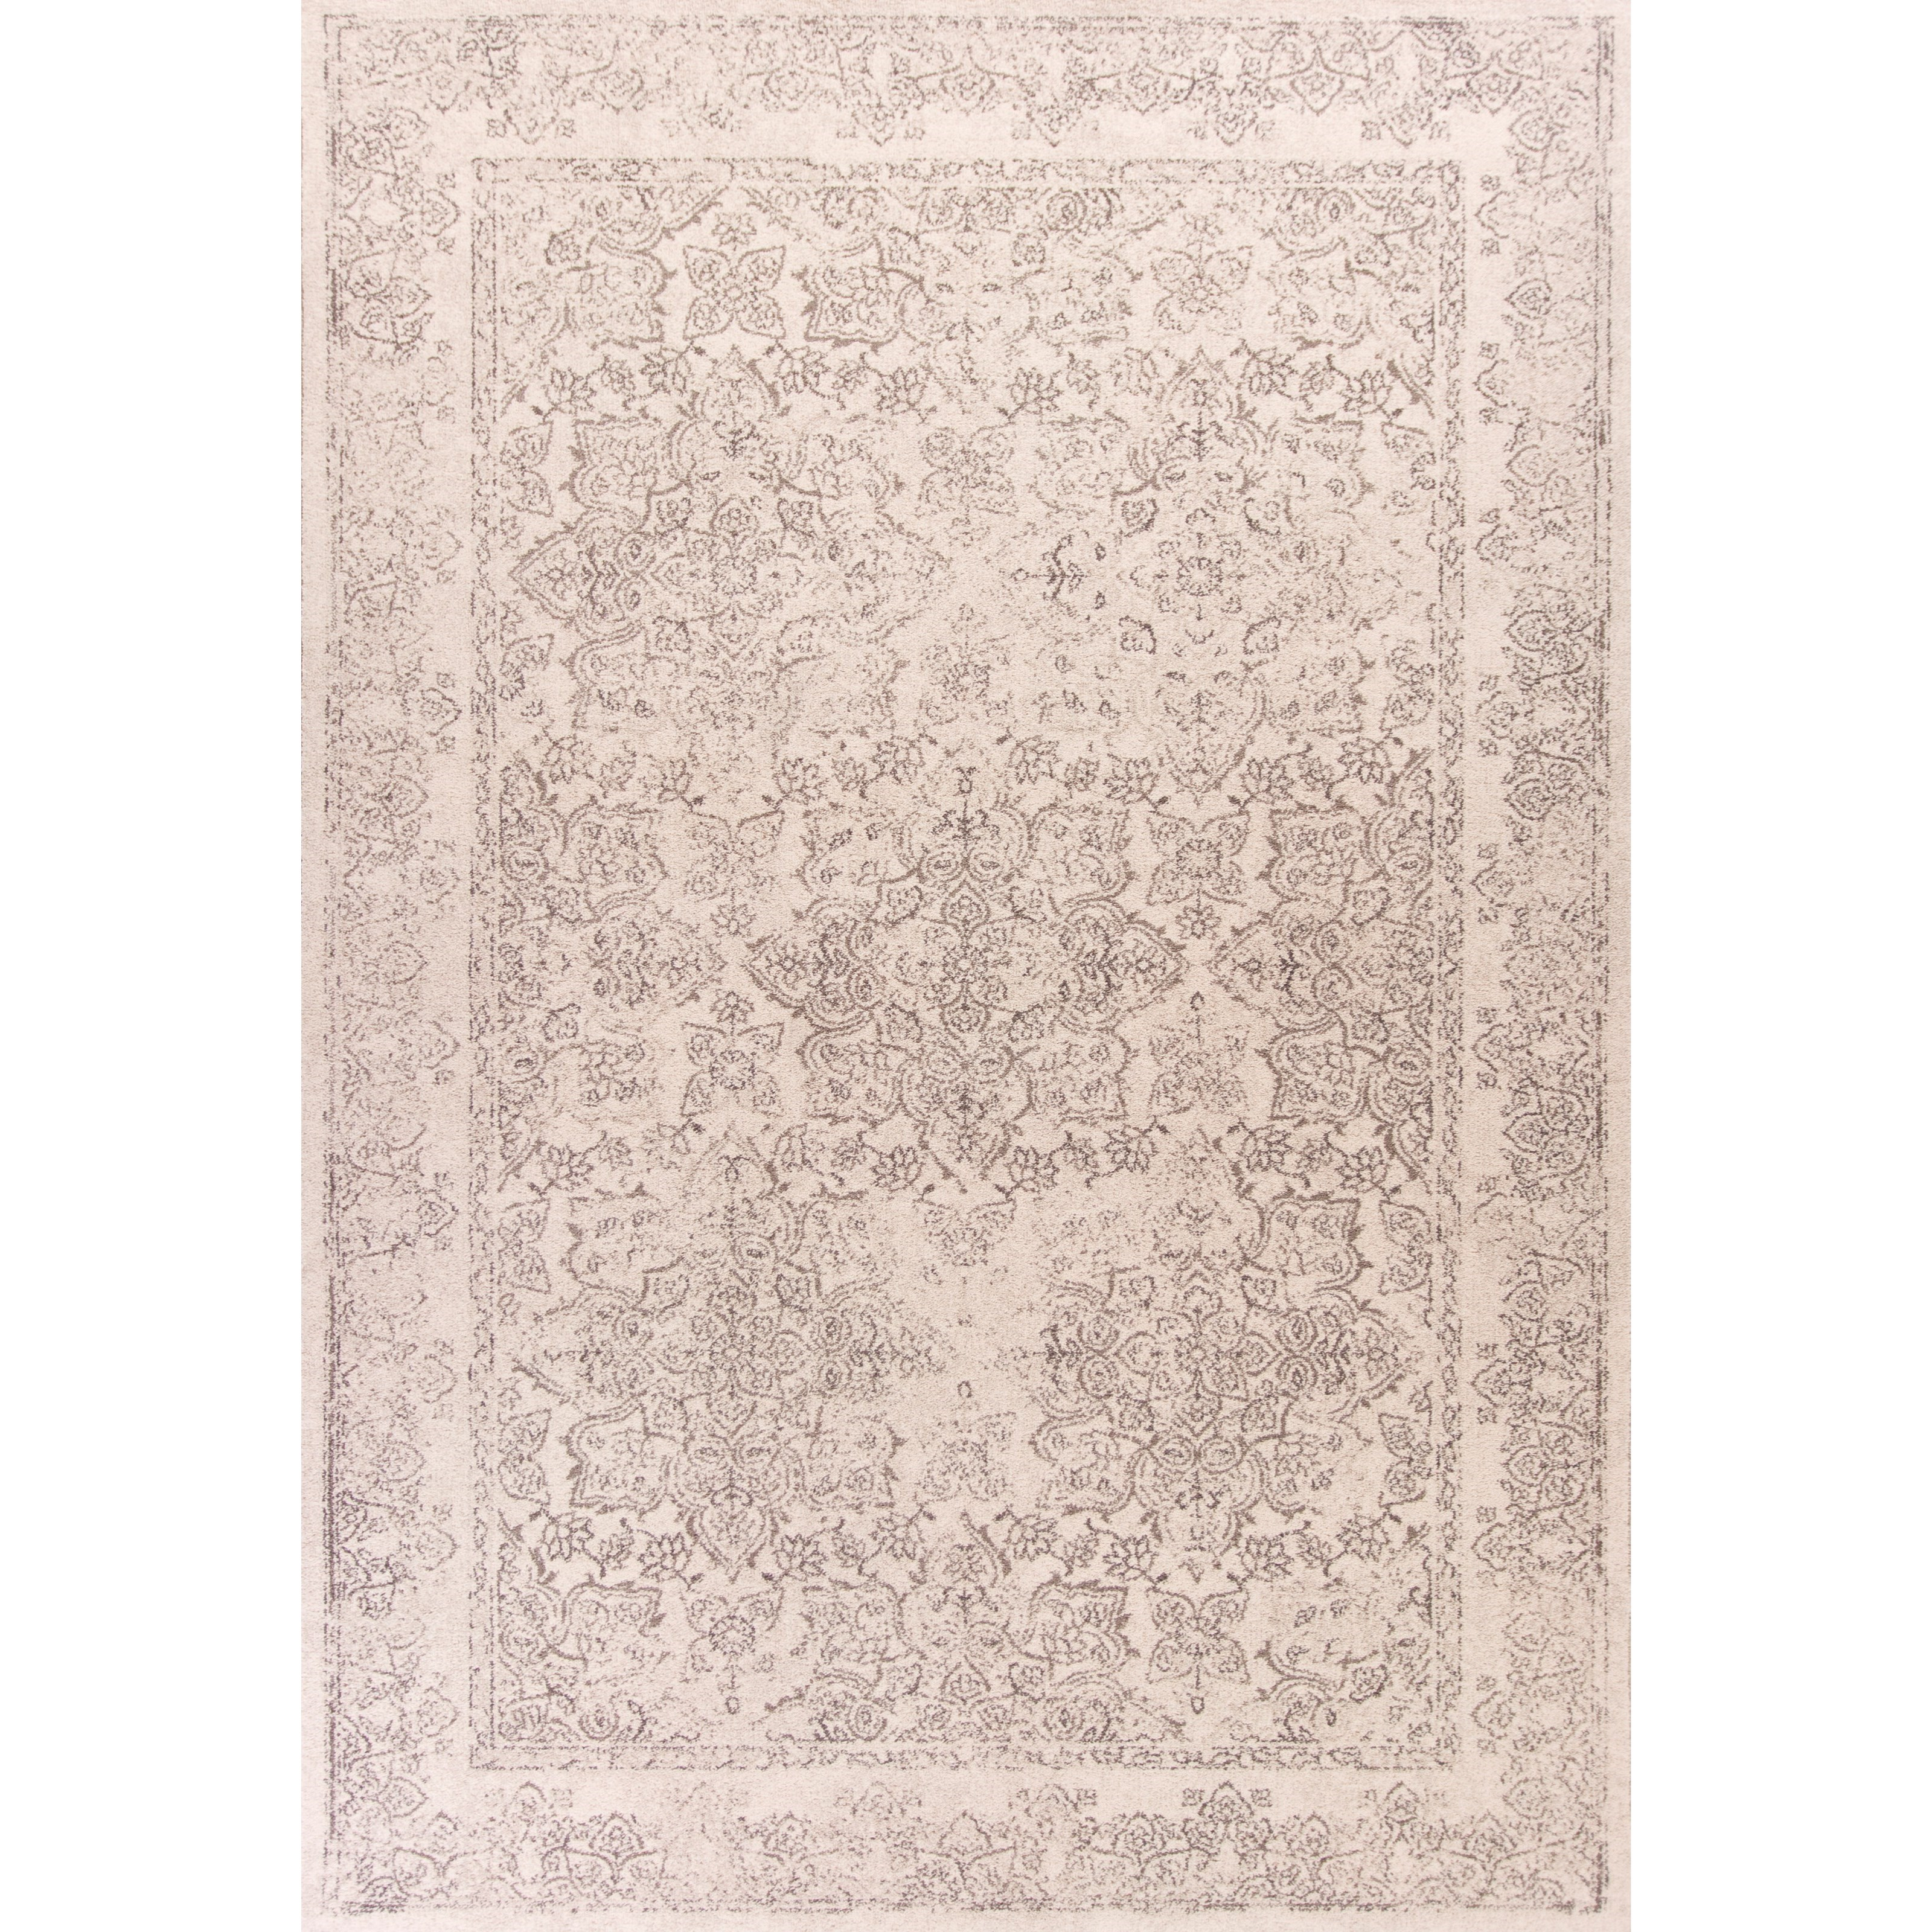 "Bob Mackie Home Vintage 7'10"" X 11'2"" Ivory Damascus Area Rug by Kas at Zak's Home"